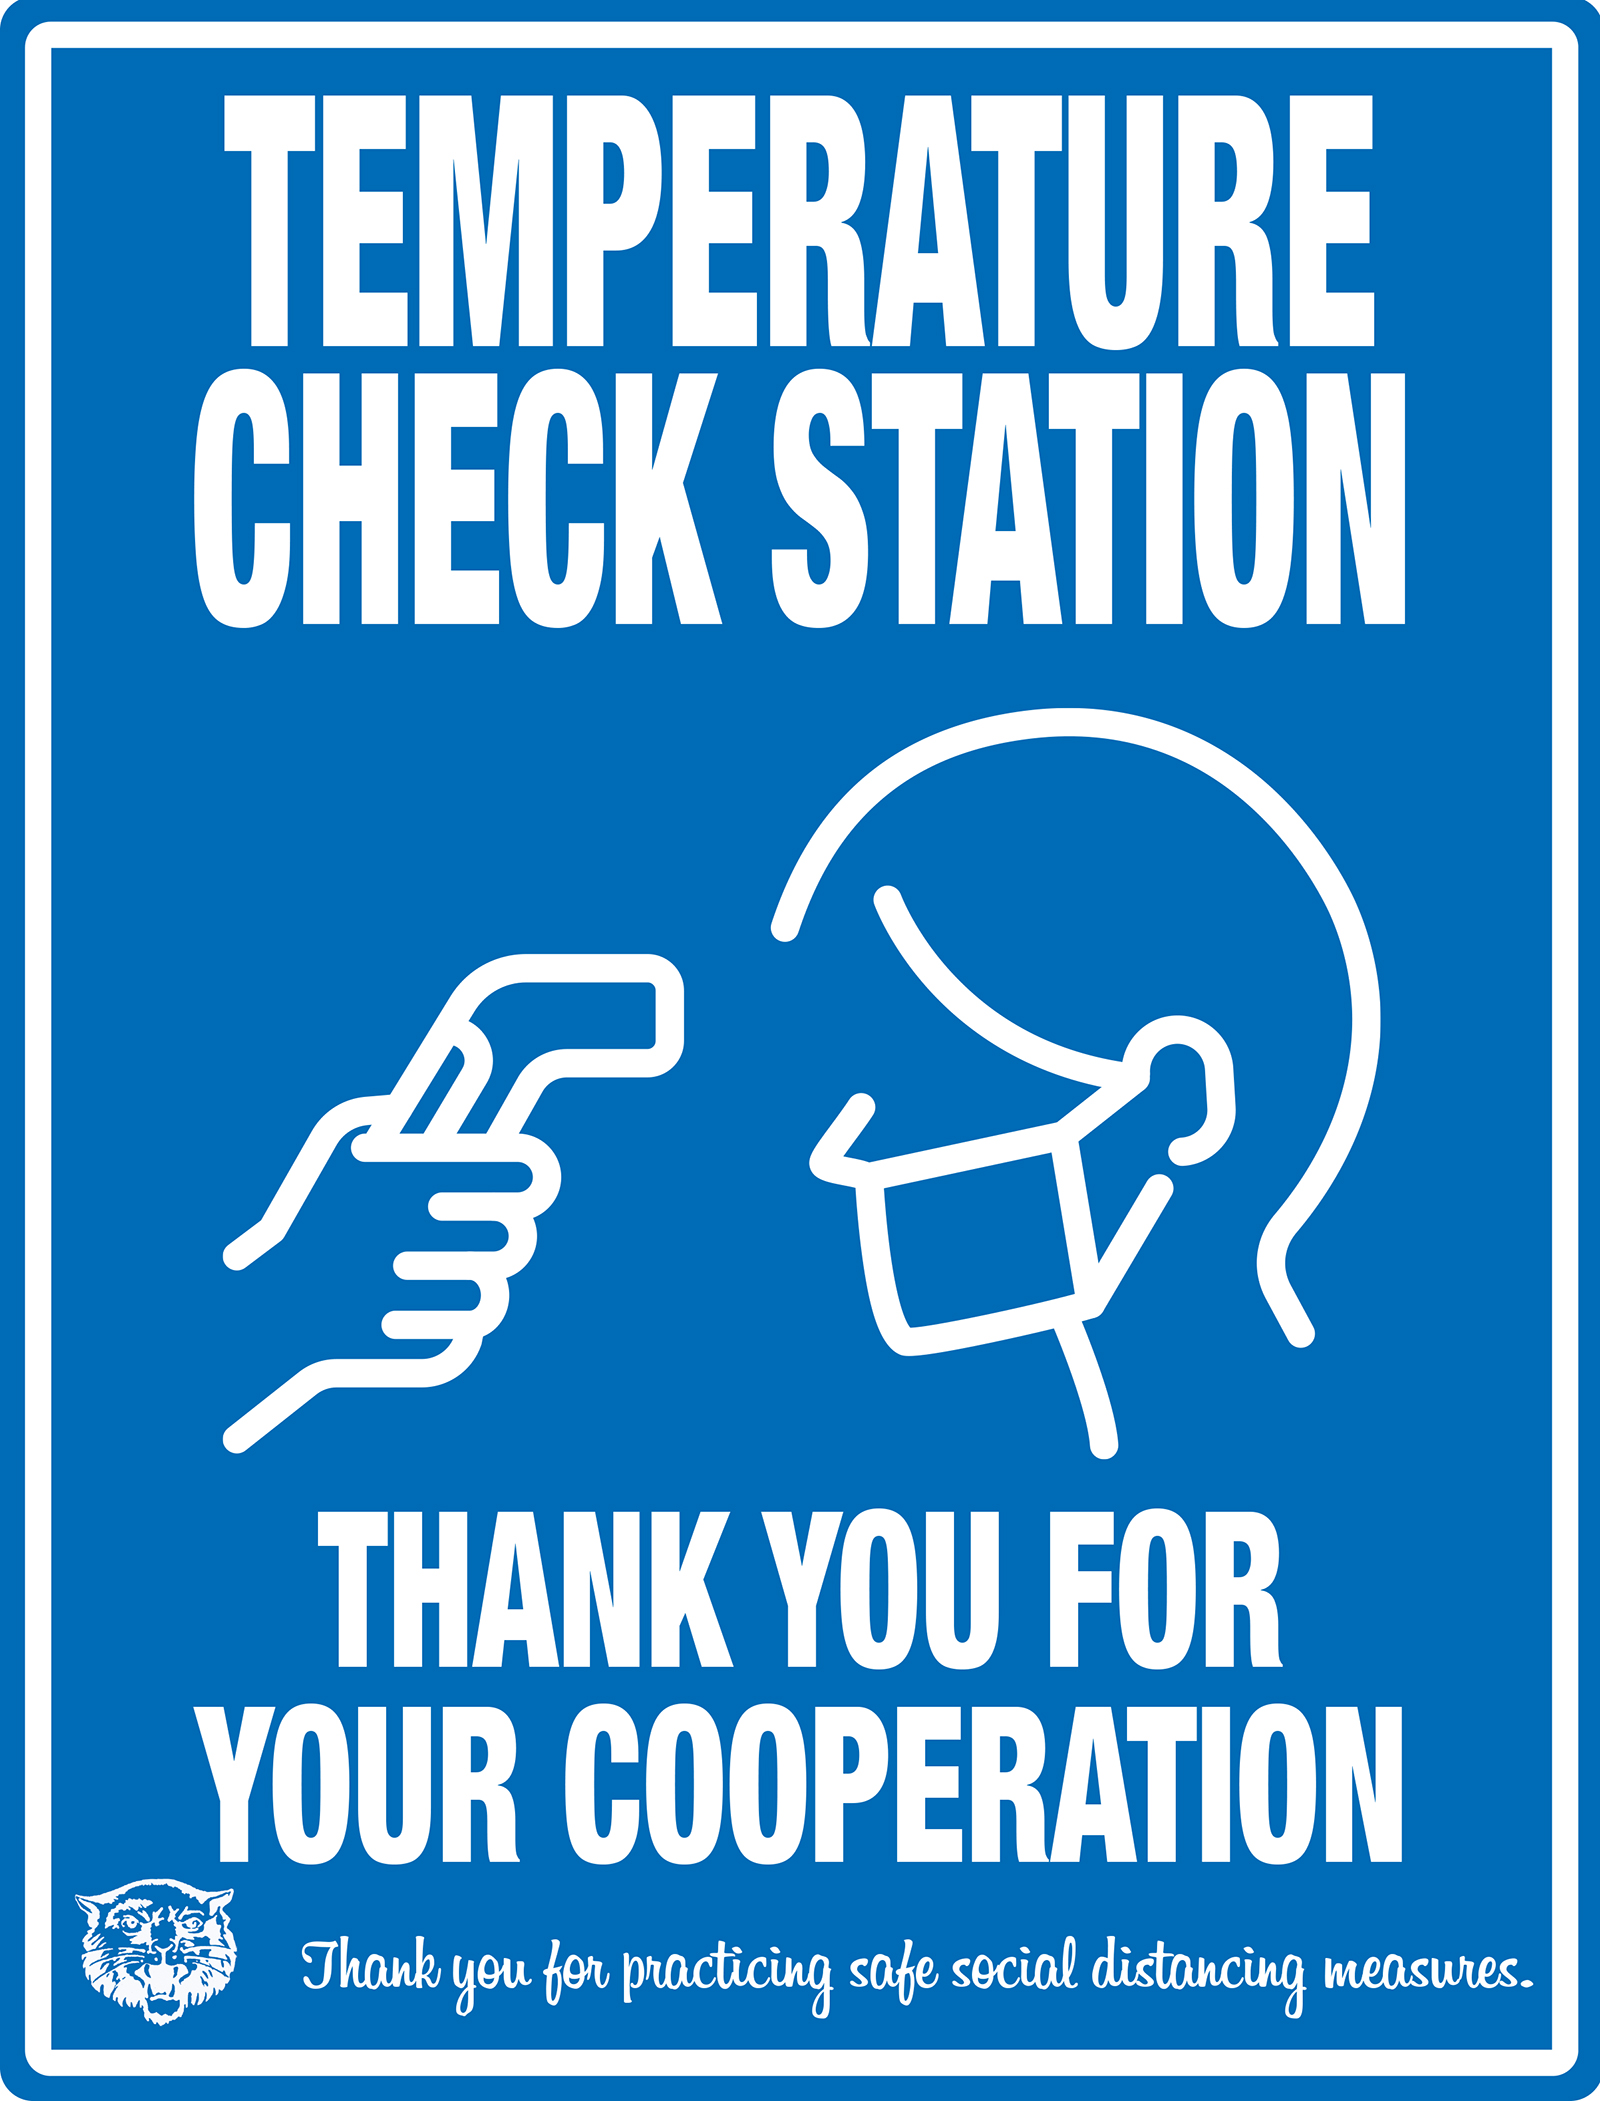 TEMPERATURE CHECK STATION THANK YOU FOR YOUR COOPERATION Thank you for practicing safe social distancing measures.